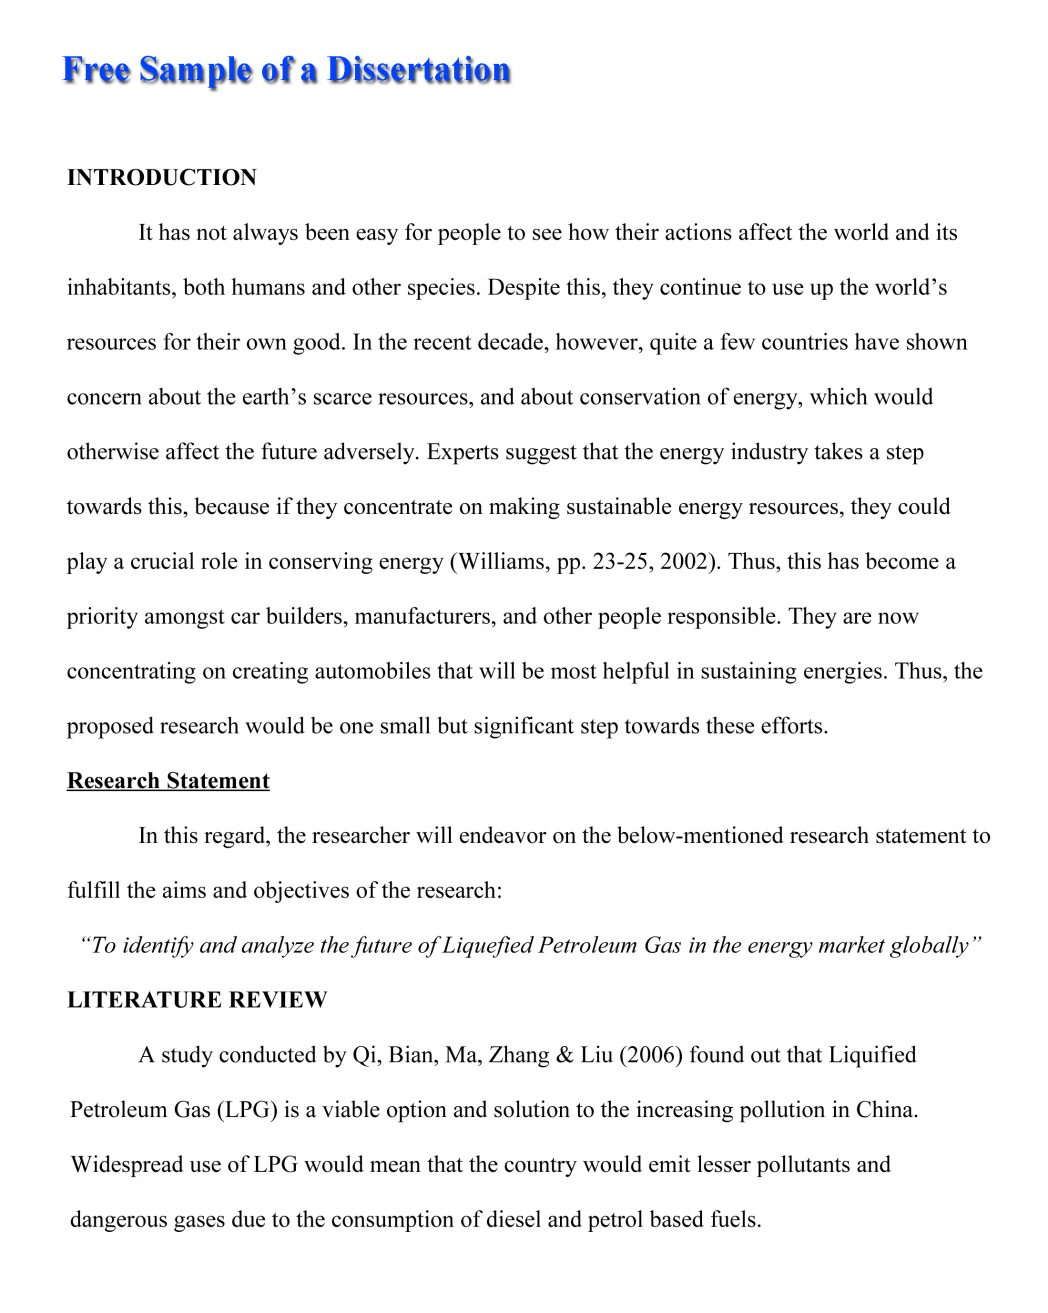 001 How To Write Comparative Essay Analysis Thesis Poetry Introduction Dissertation Free S Vce Contrast Example Comparison Incredible A Outline Compare Ap World History Full